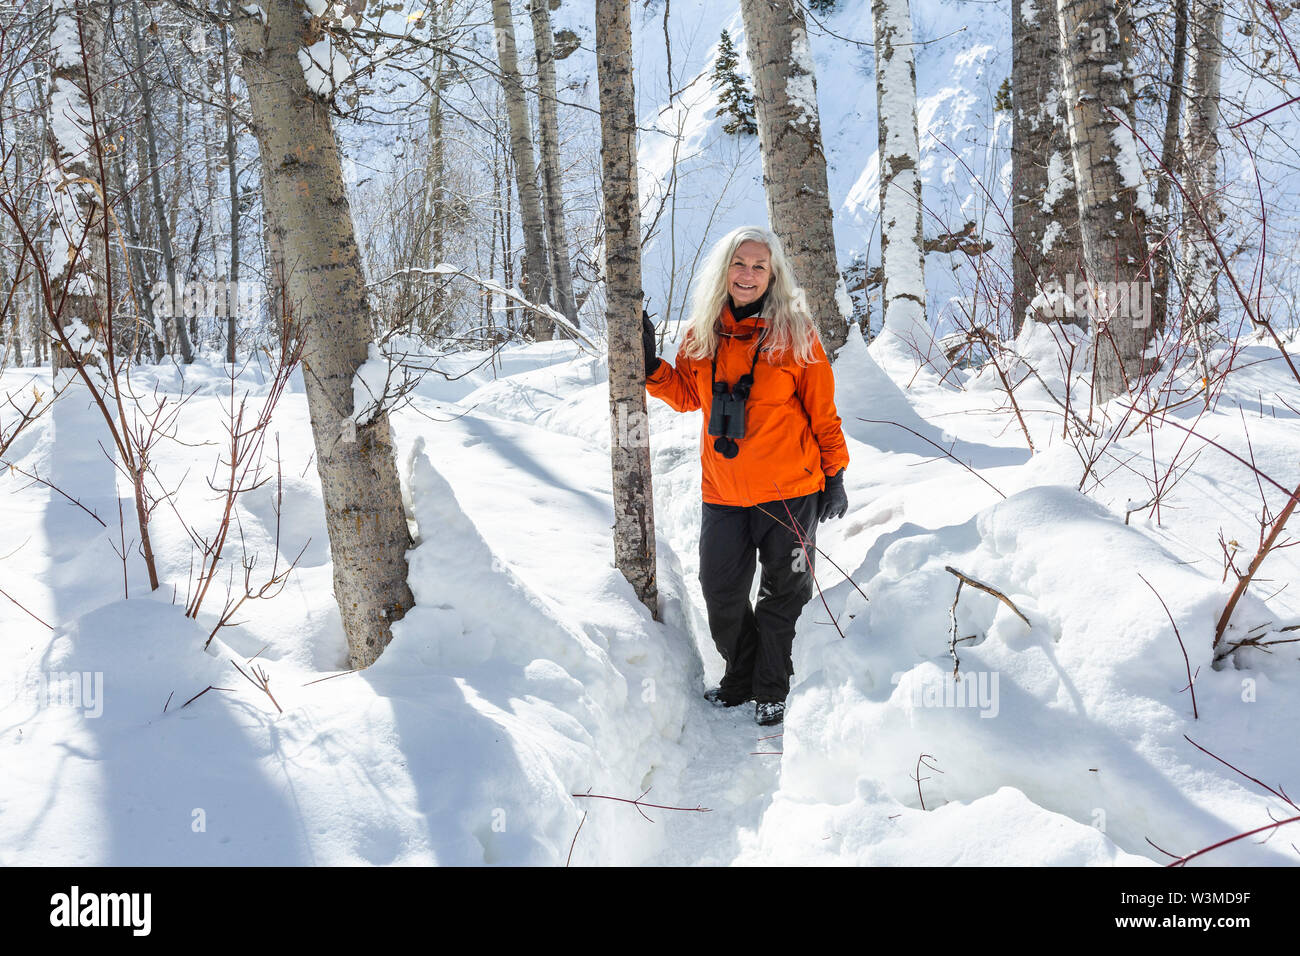 Mature woman wearing orange coat by bare trees in snow - Stock Image